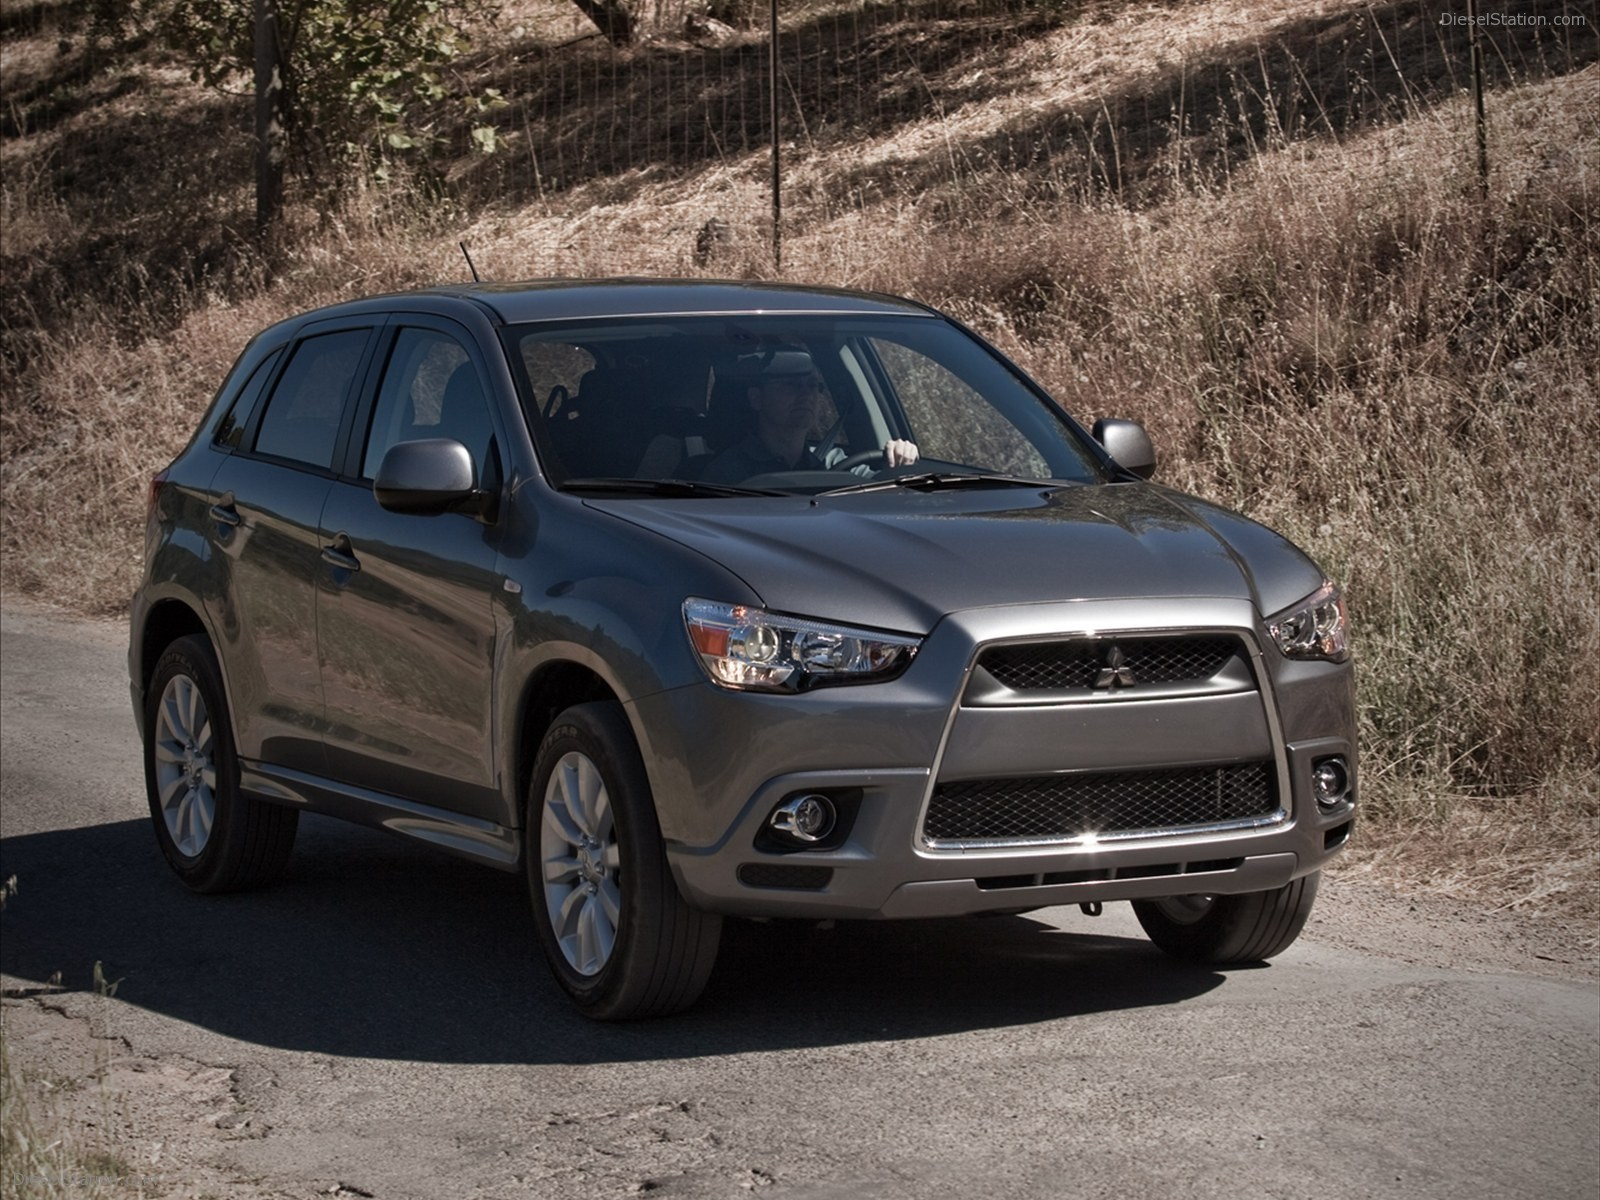 Mitsubishi Outlander Sport Cars Prices, Wallpaper, Specs Review